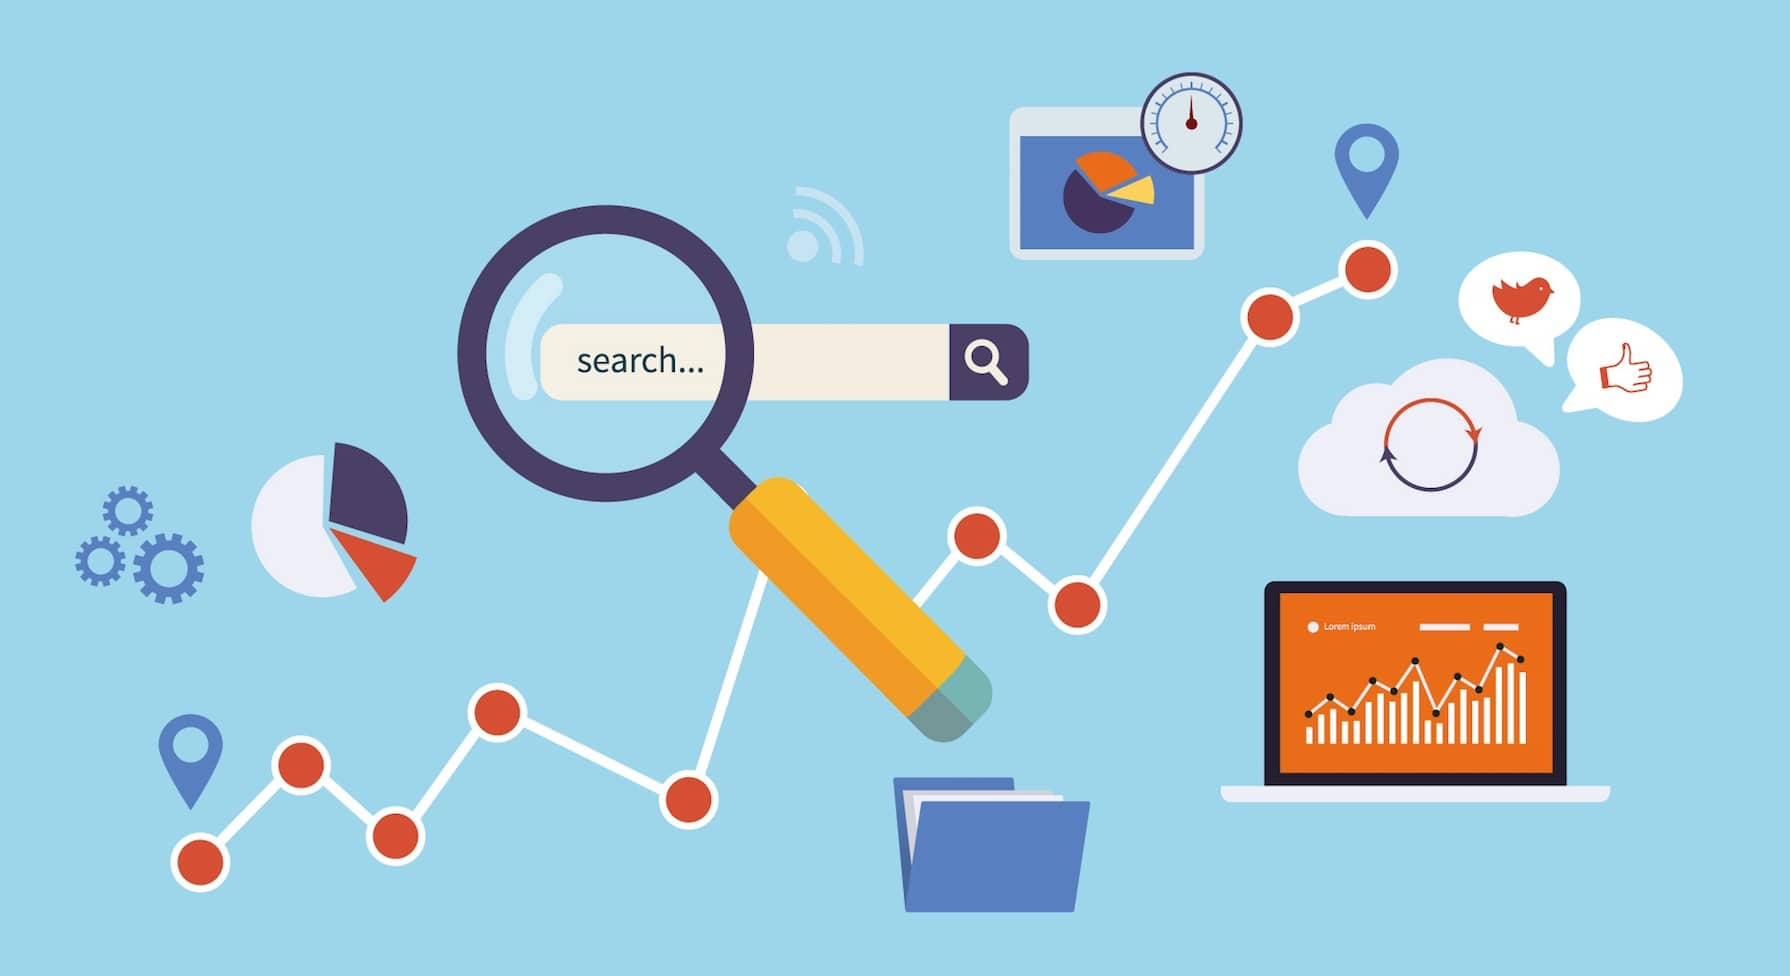 seo tool provider, How To Find A Reputable SEO Tool Provider